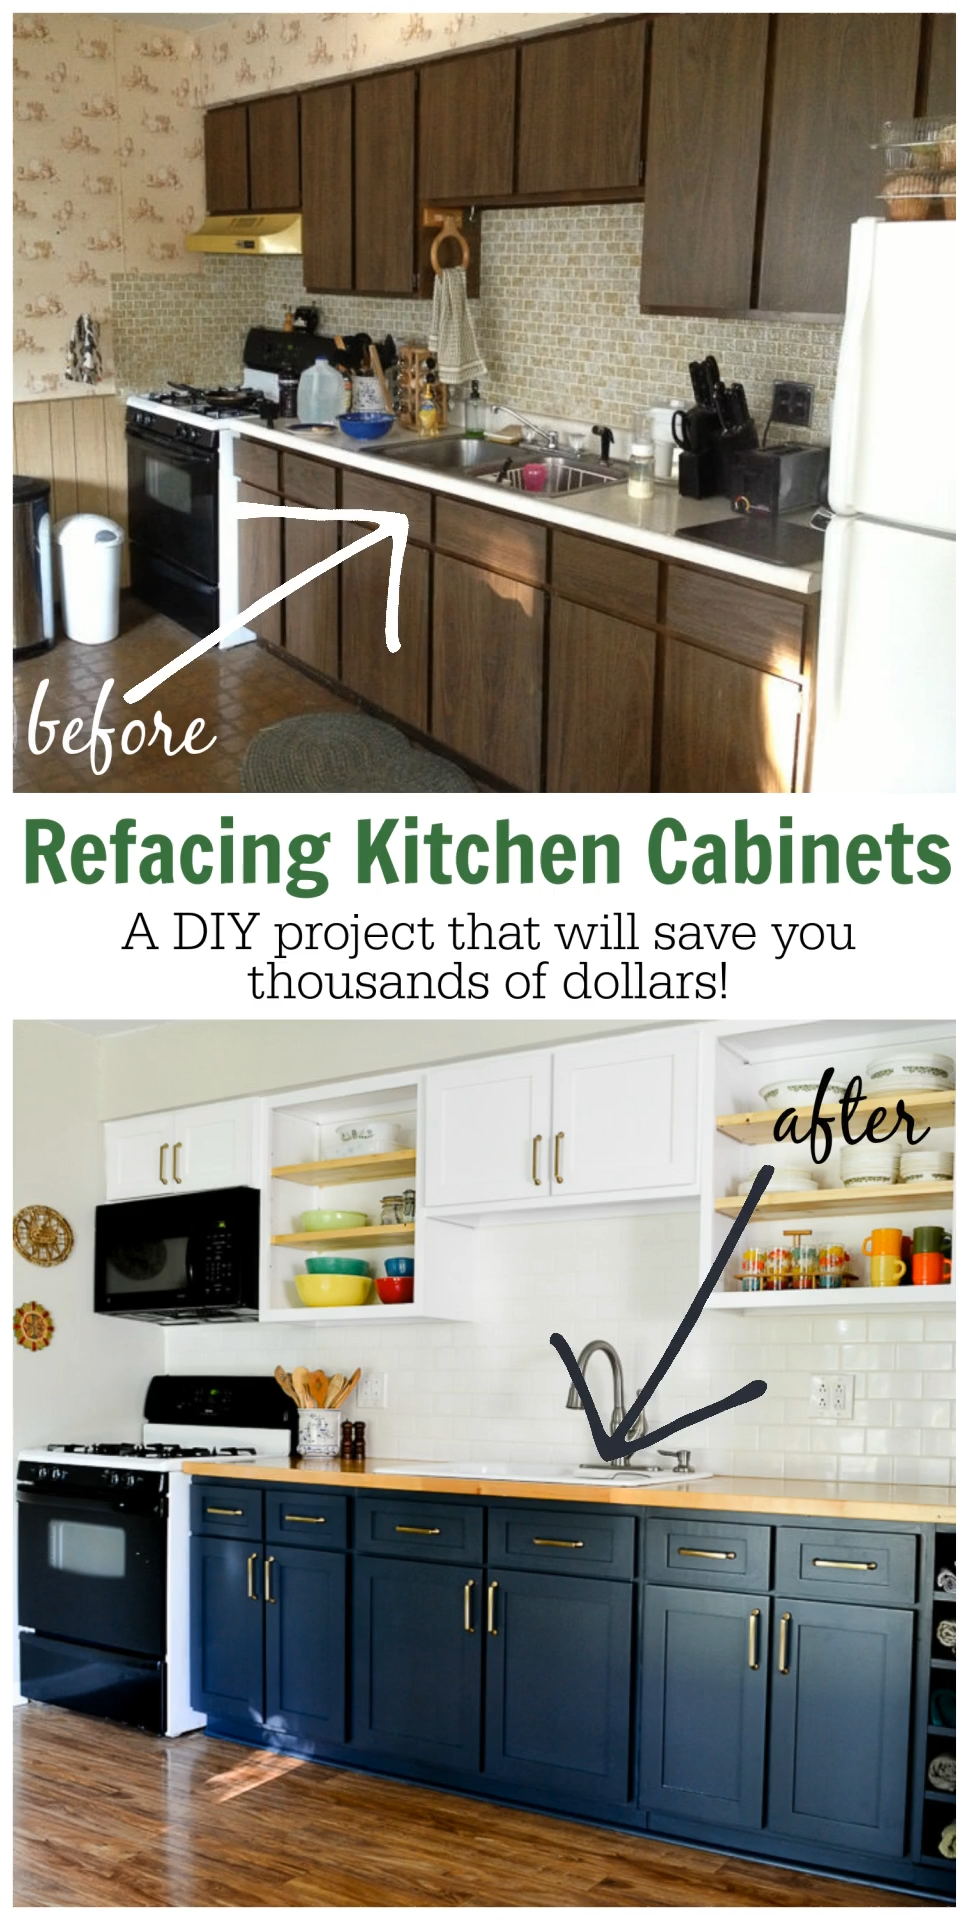 Why I Chose to Reface My Kitchen Cabinets Instead